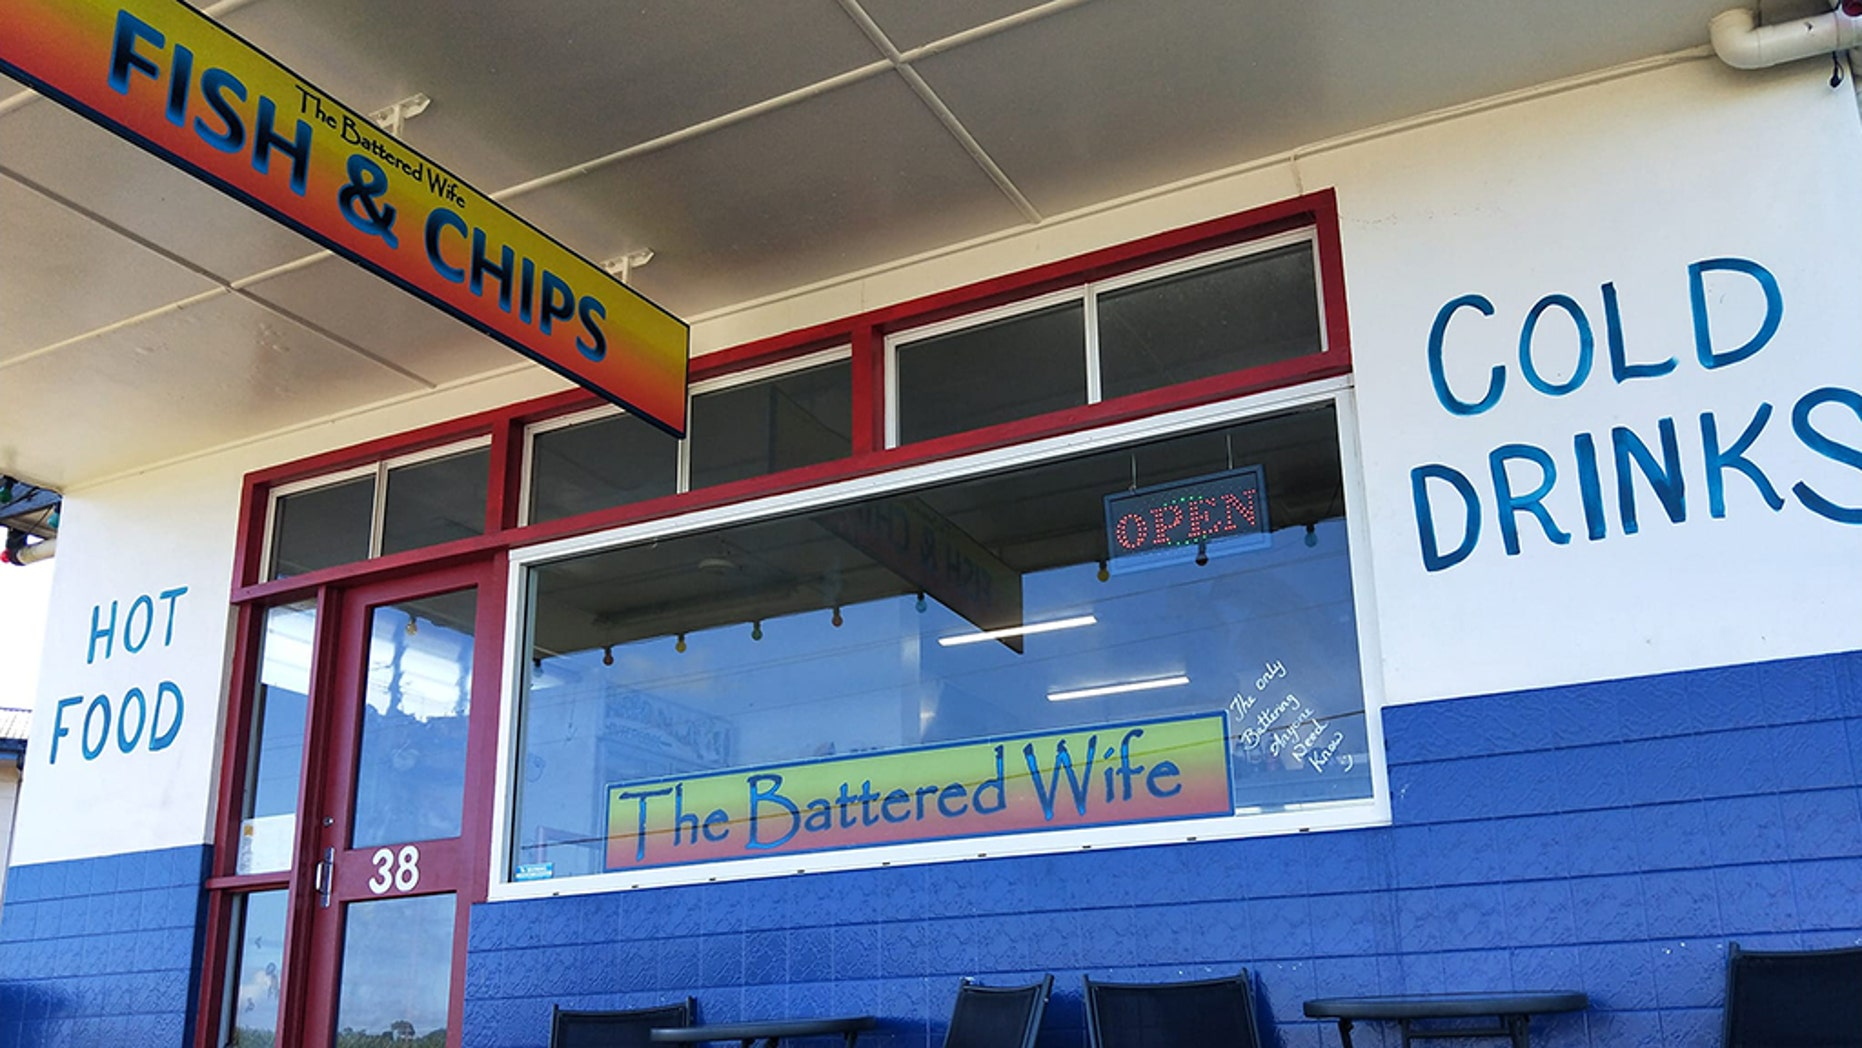 A fish and chips shop in Australia is under fire for its name.